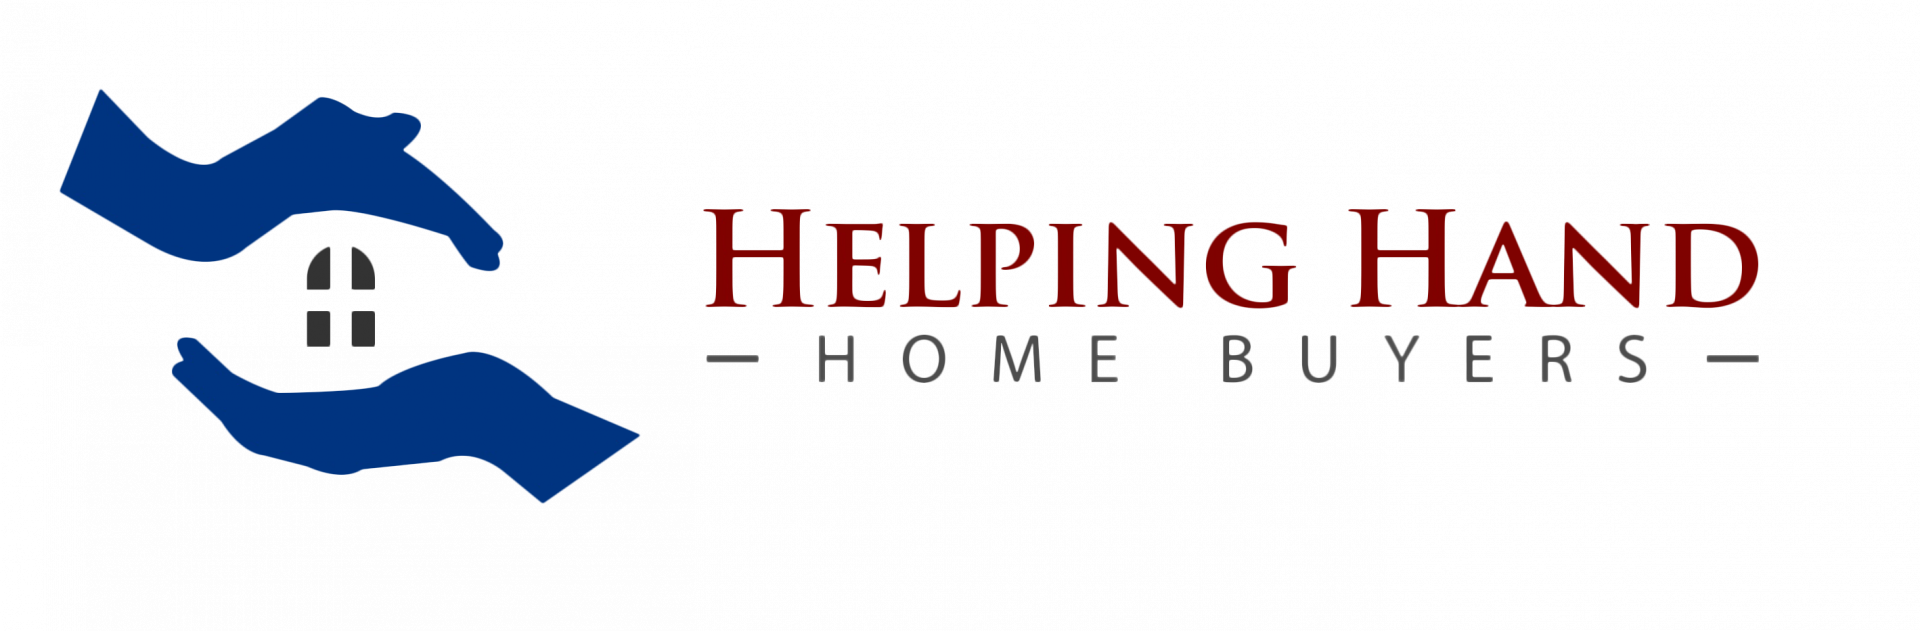 Helping Hand Home Buyers logo